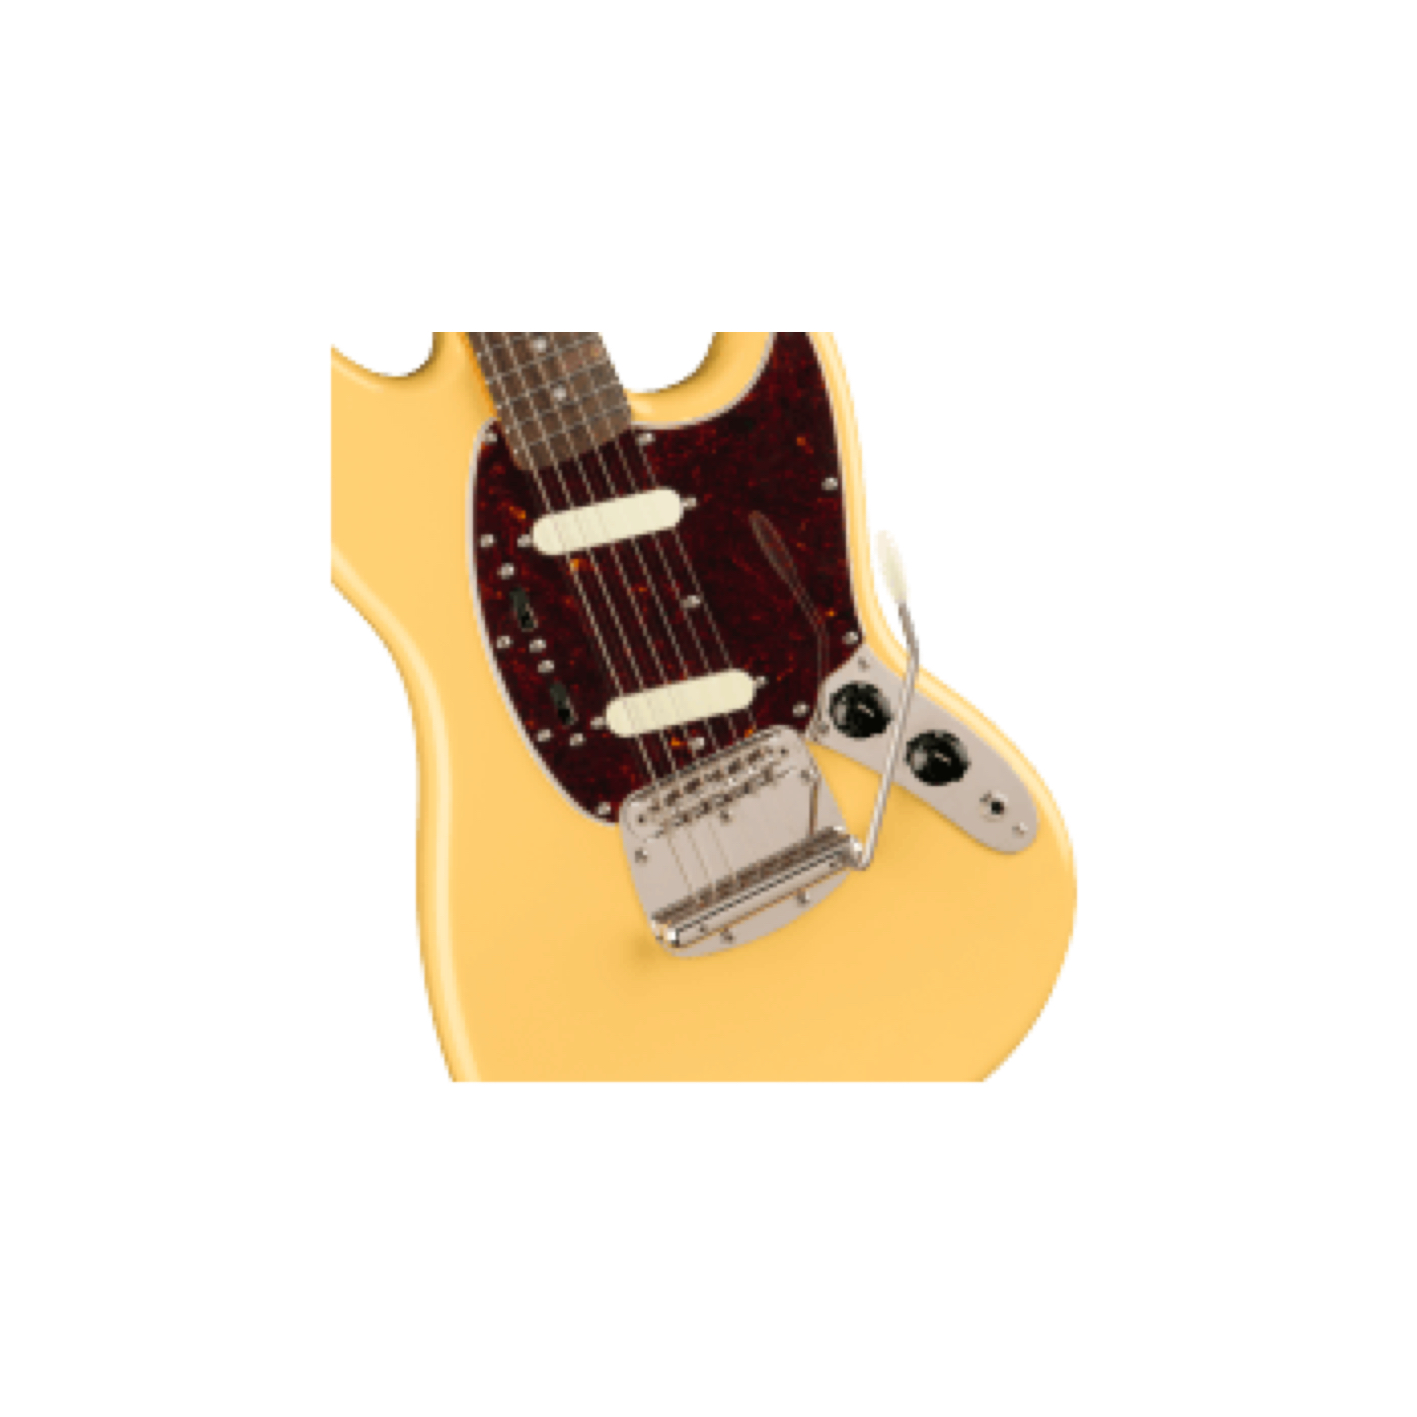 Squier Classic Vibe 60's Mustang Vintage White